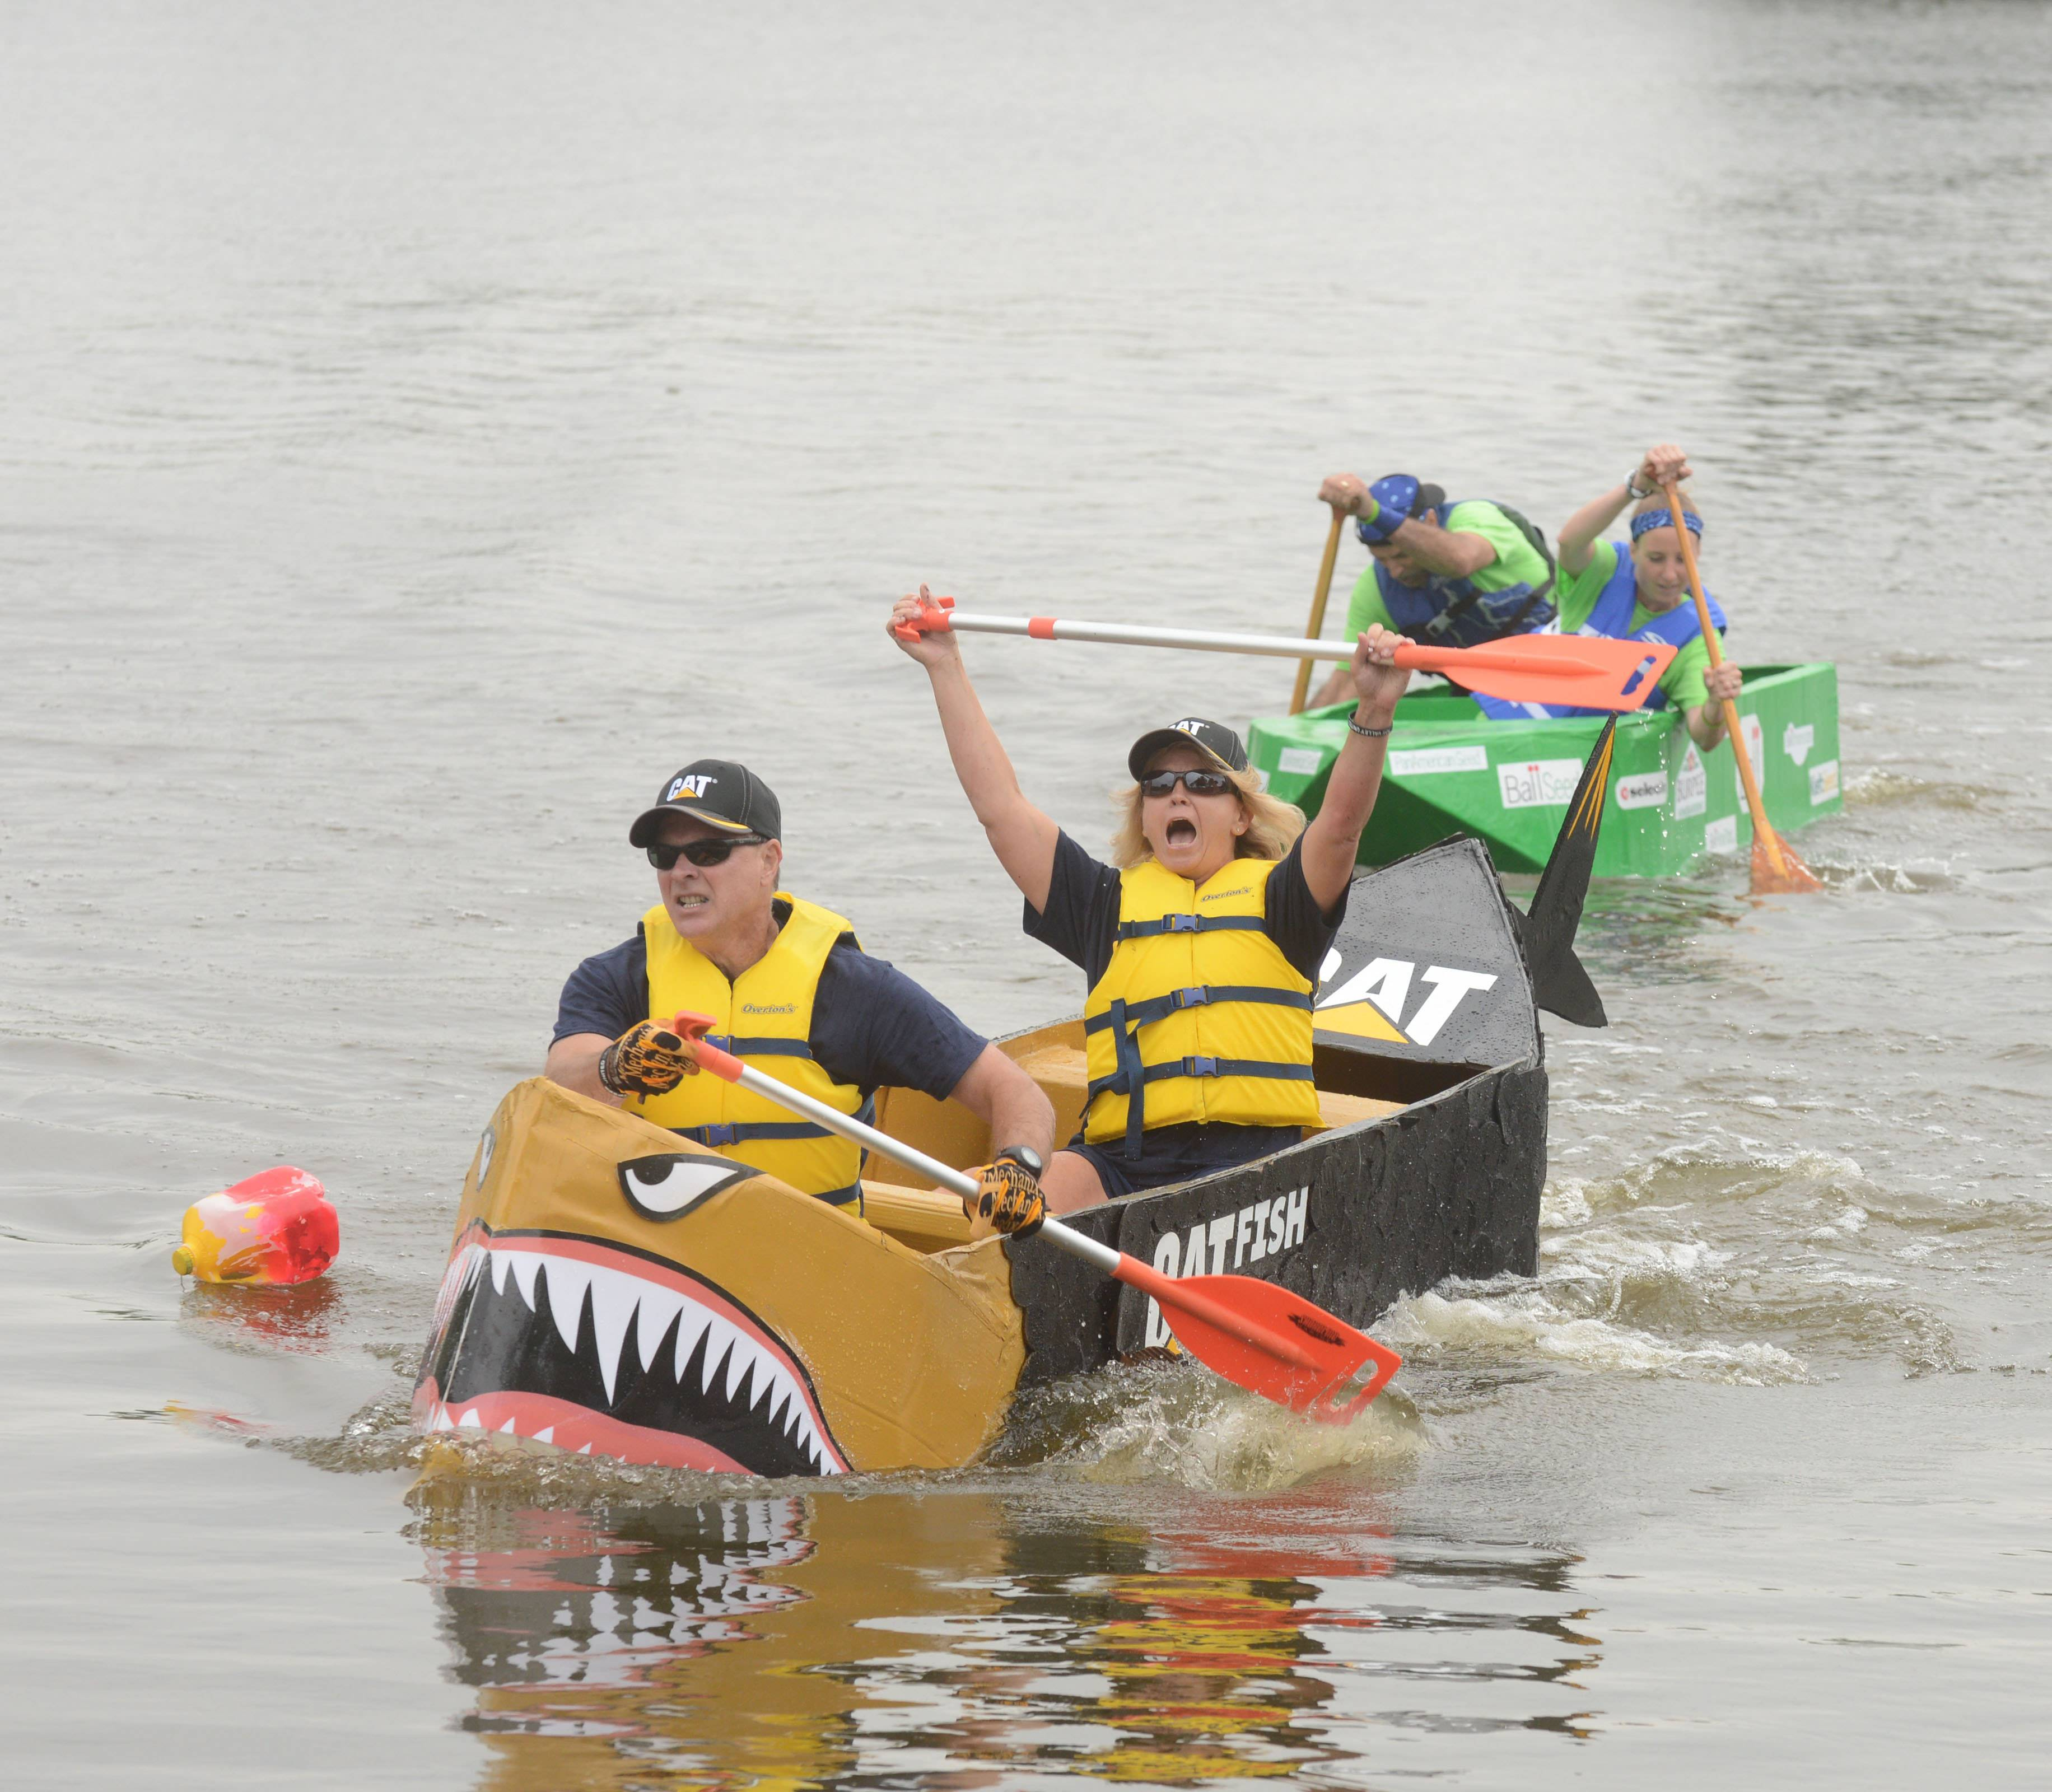 The Fox Valley United Way launched its fundraising campaign with the 12th annual Cardboard Boat Race at Phillips Park Saturday in Aurora. Mary Moutray lifts her arms in victory as Don Bauer gives it all to the line. They won their heat during the races. Both are from Aurora.